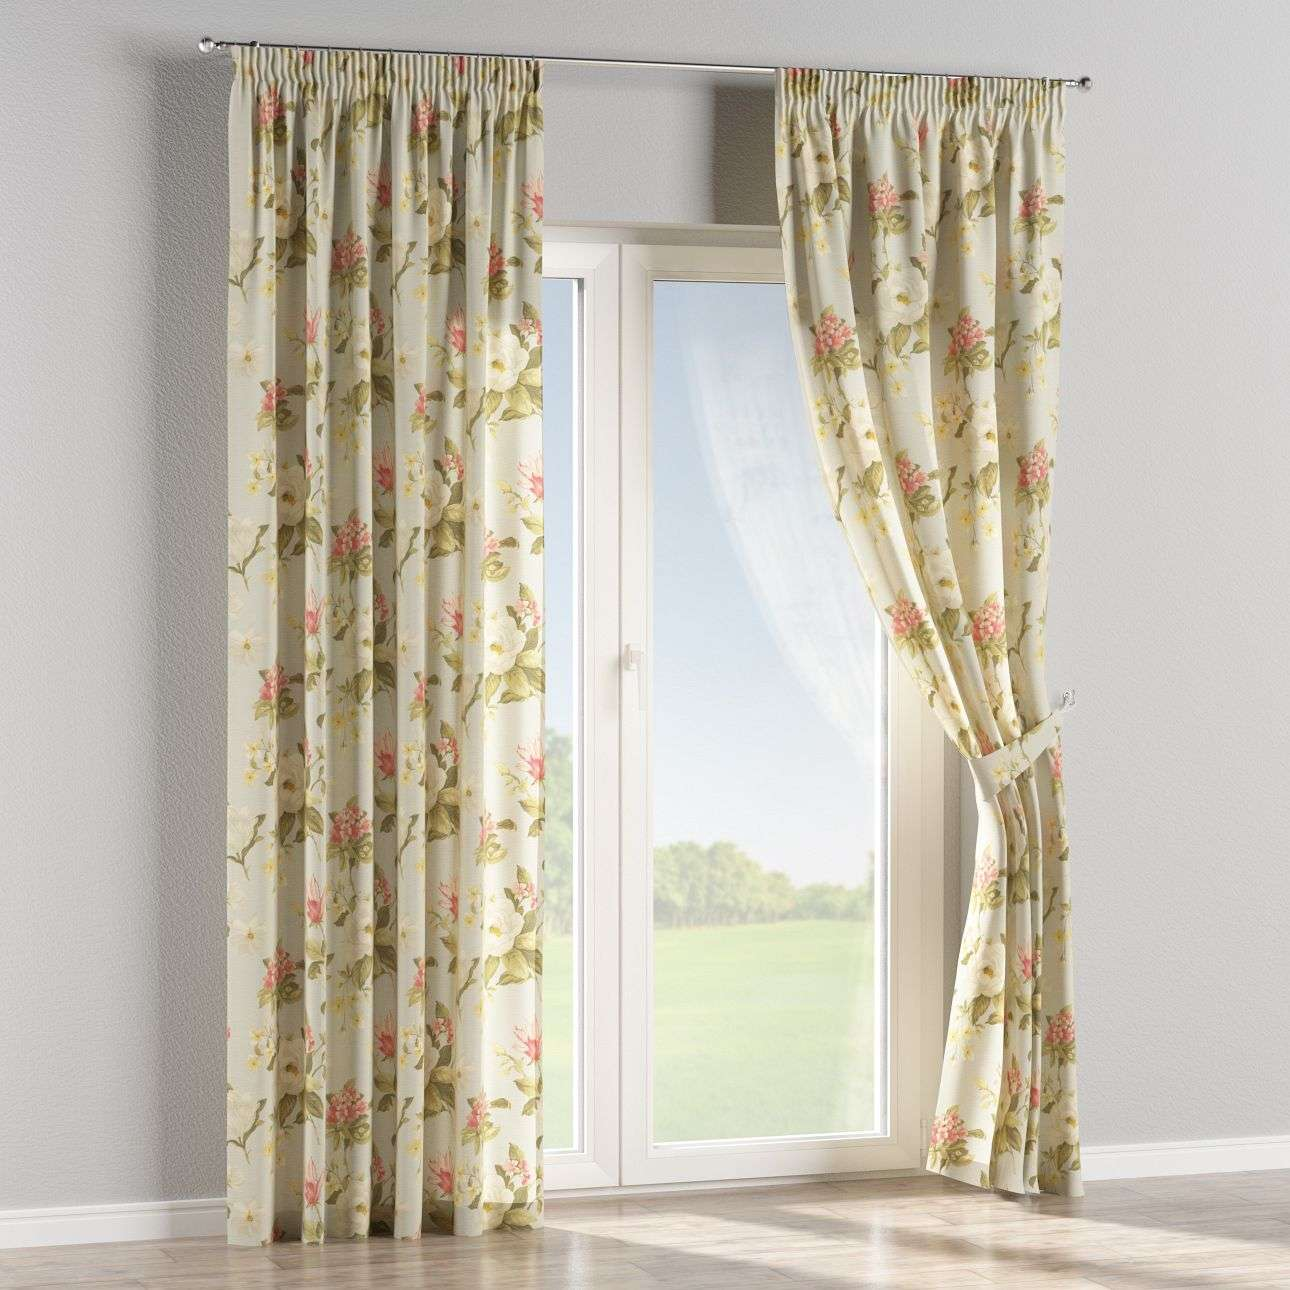 Pencil pleat curtains 130 x 260 cm (51 x 102 inch) in collection Londres, fabric: 123-65